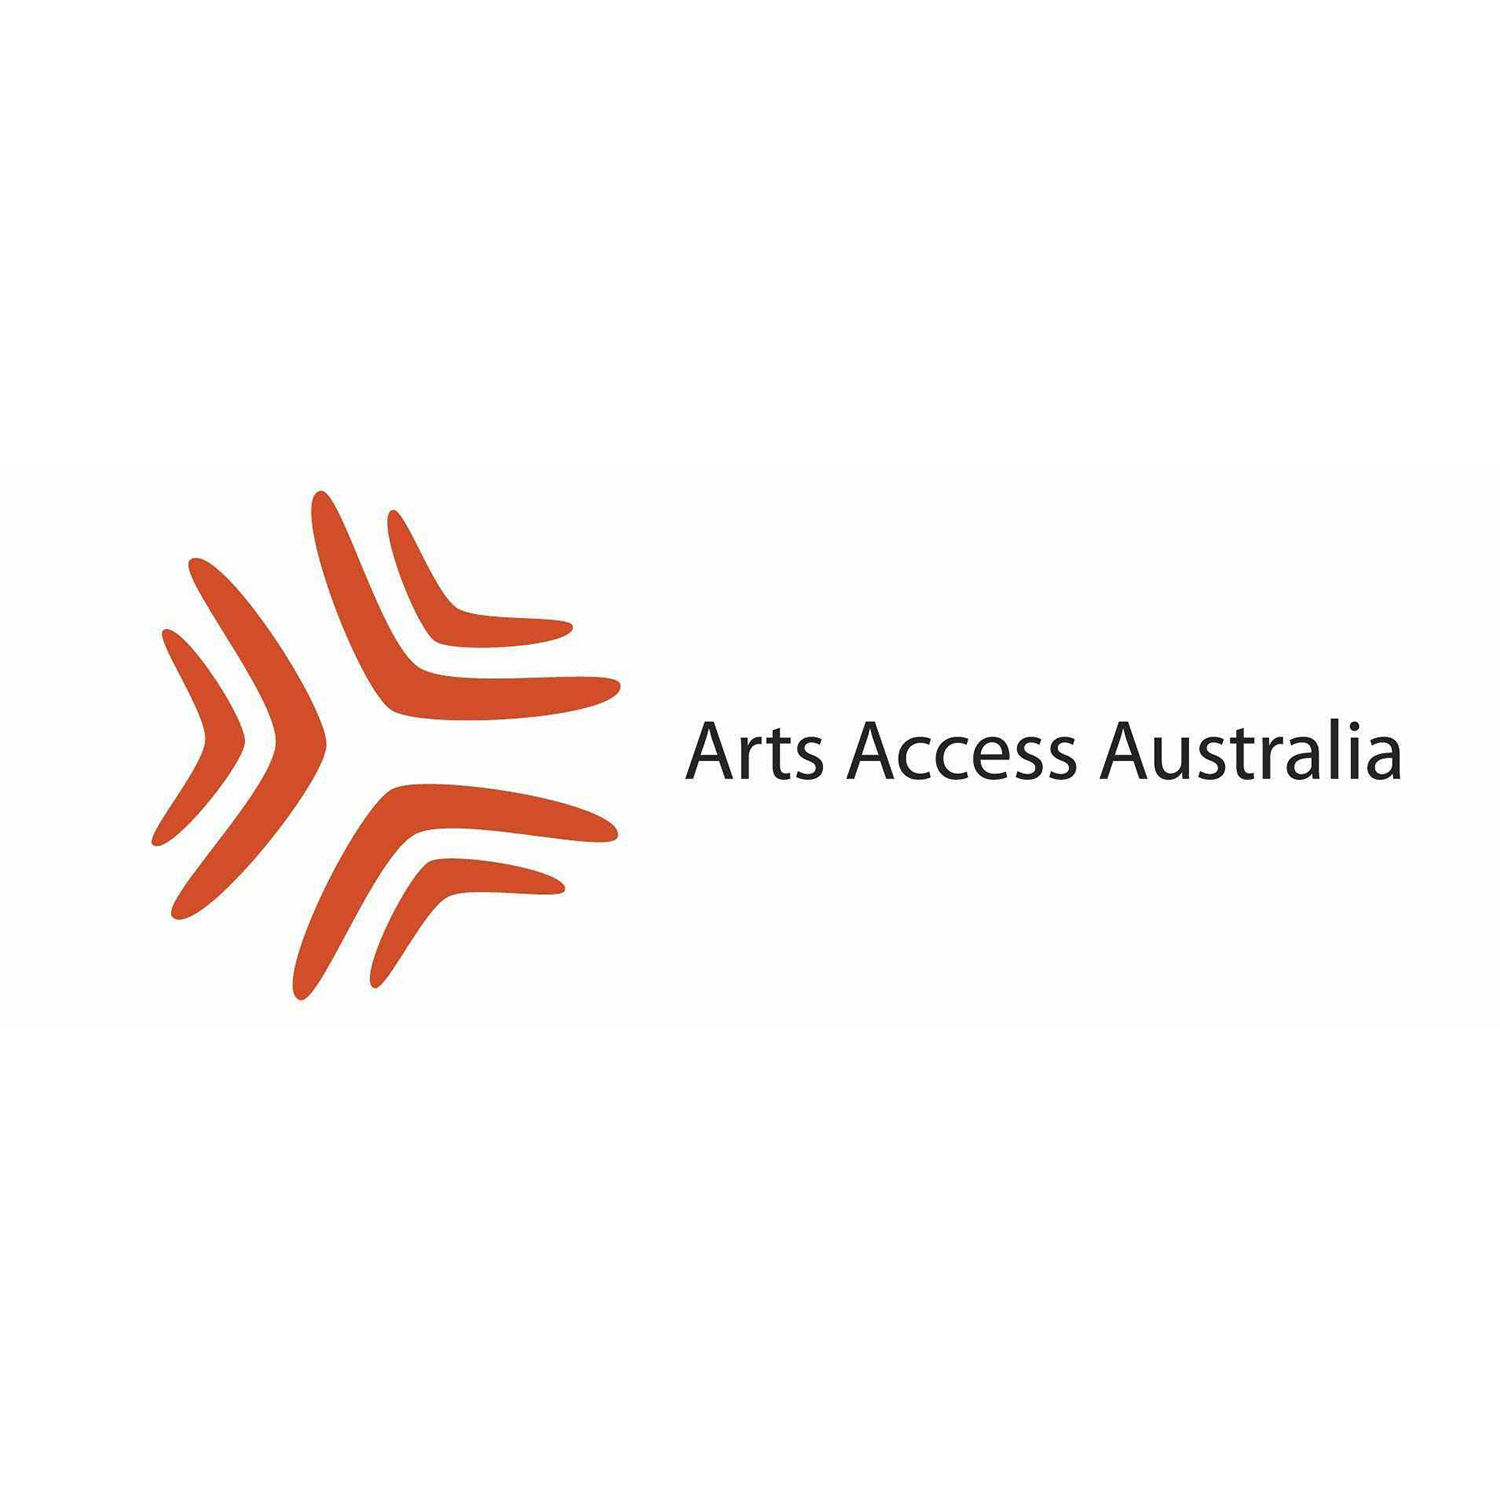 Arts Access Australia logo on a white background